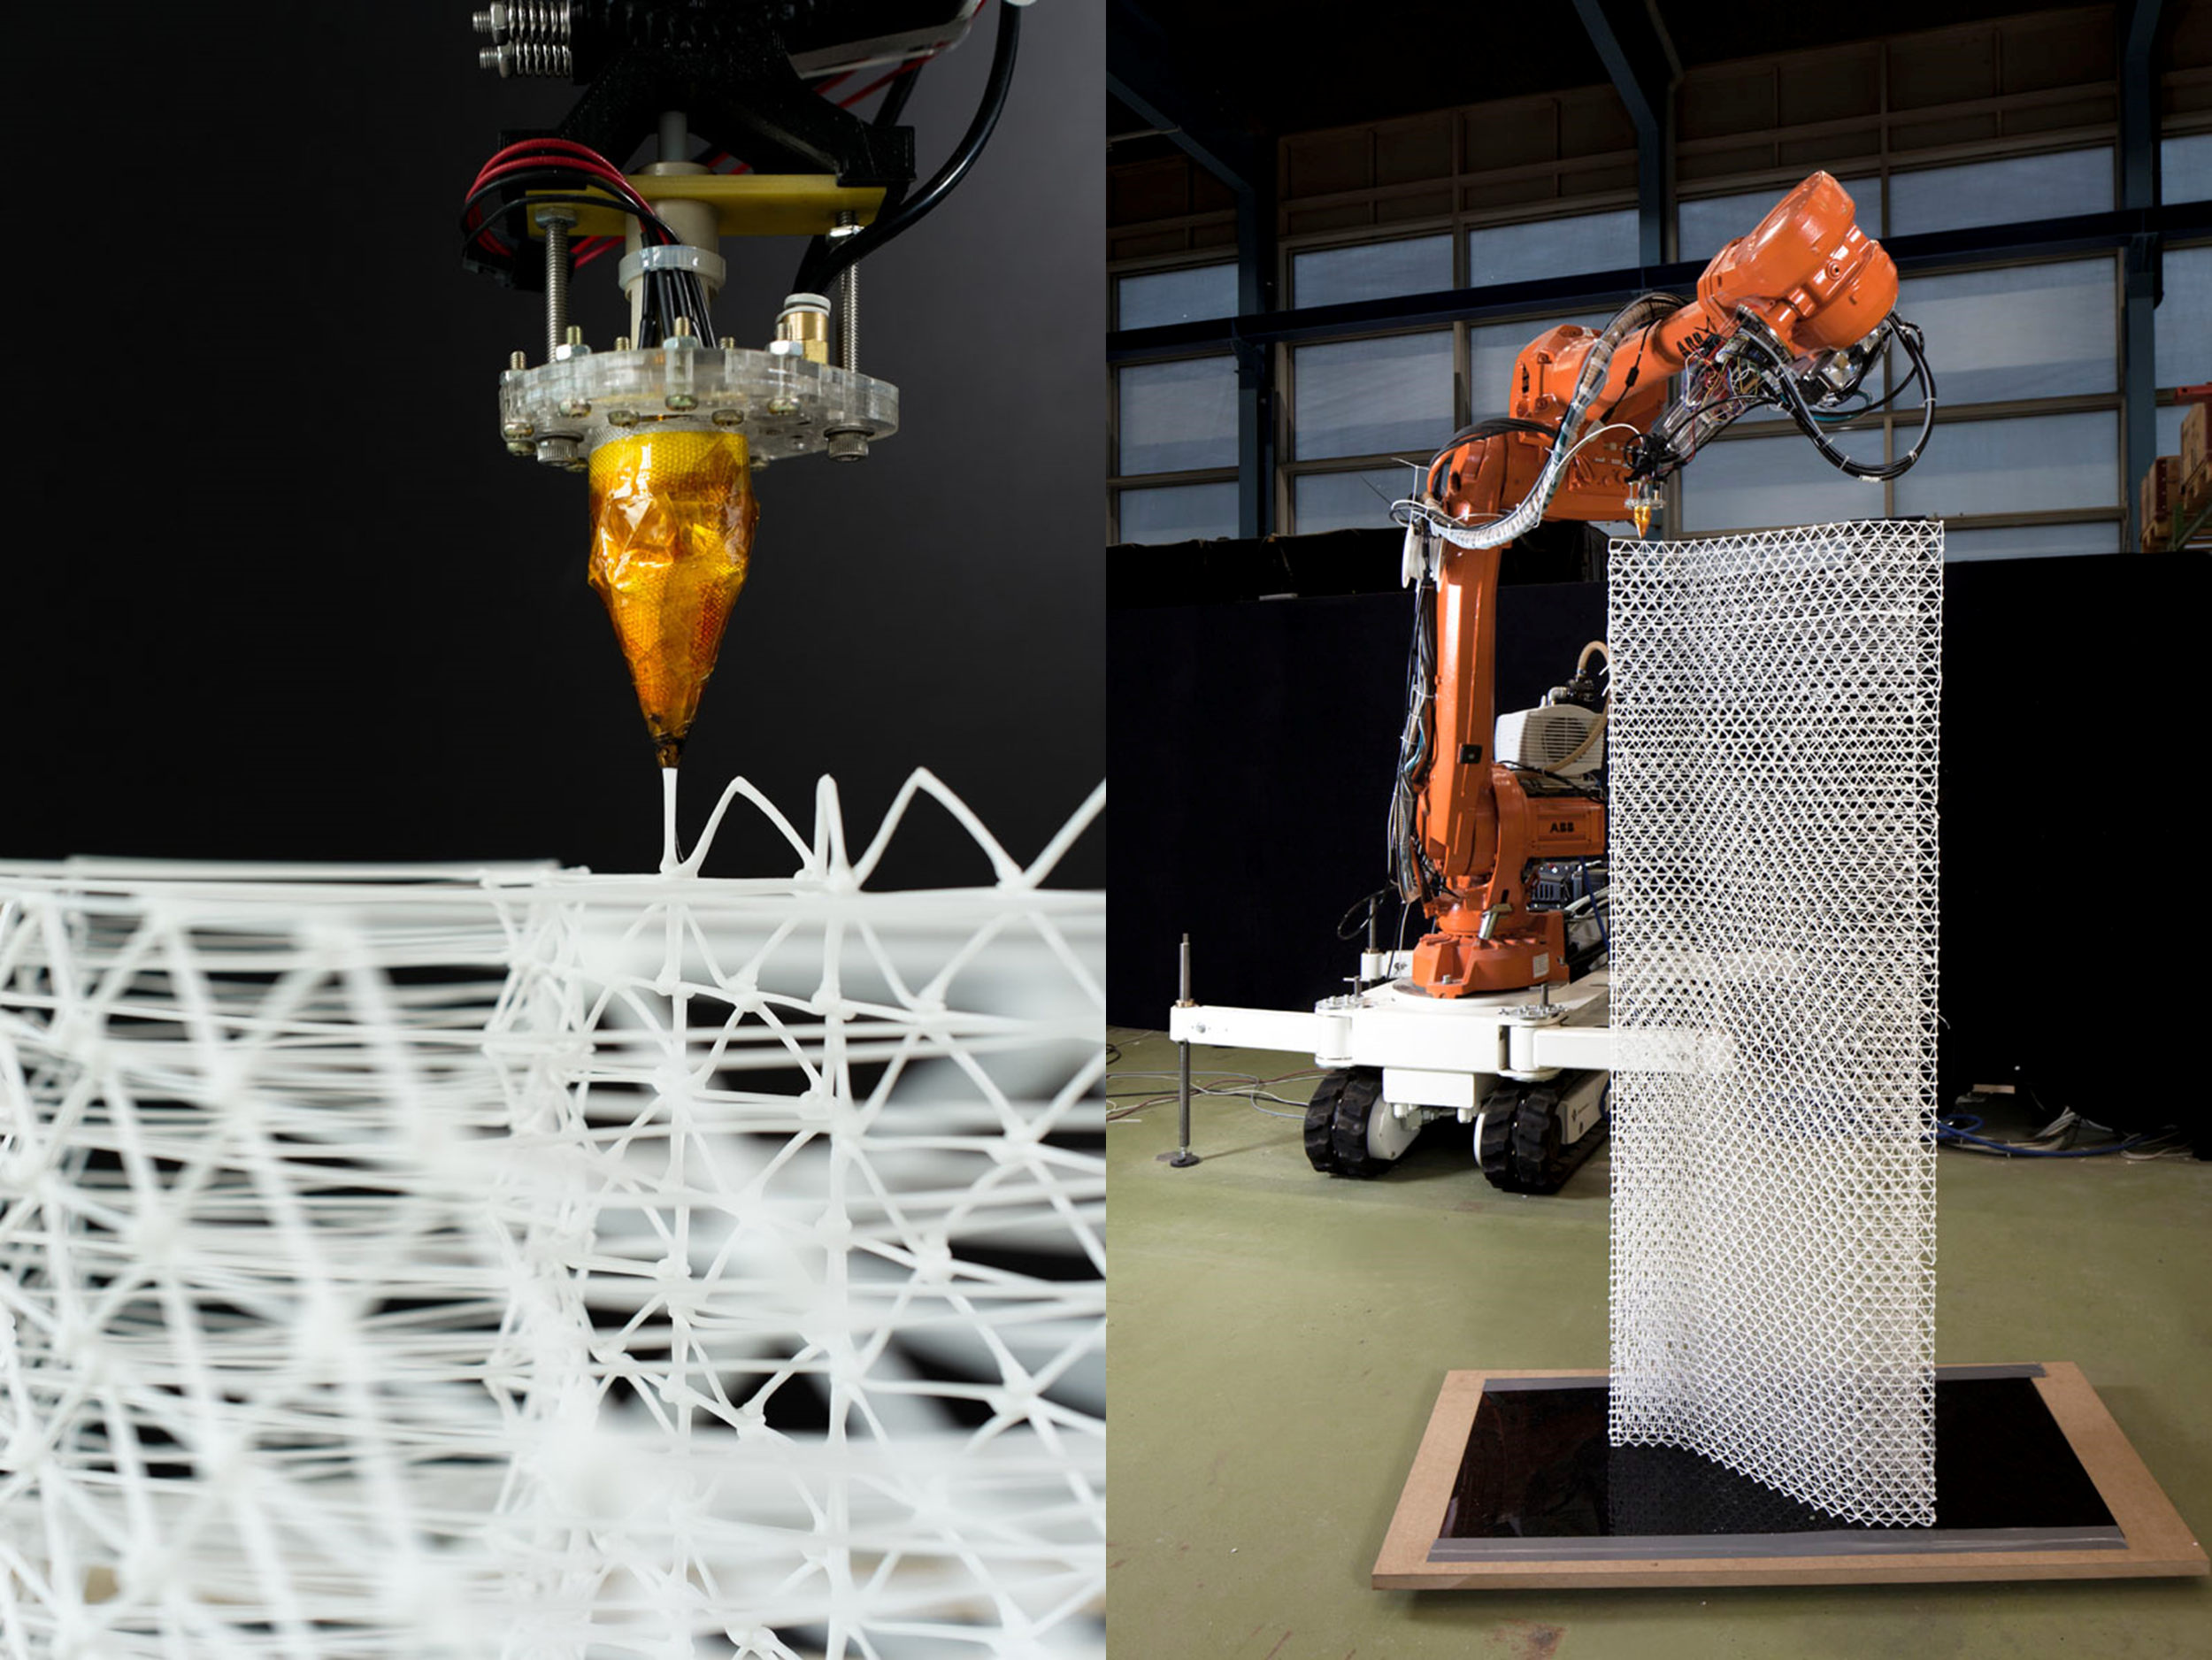 An orange Mesh Mould 3D printer goes to work on a steel frame